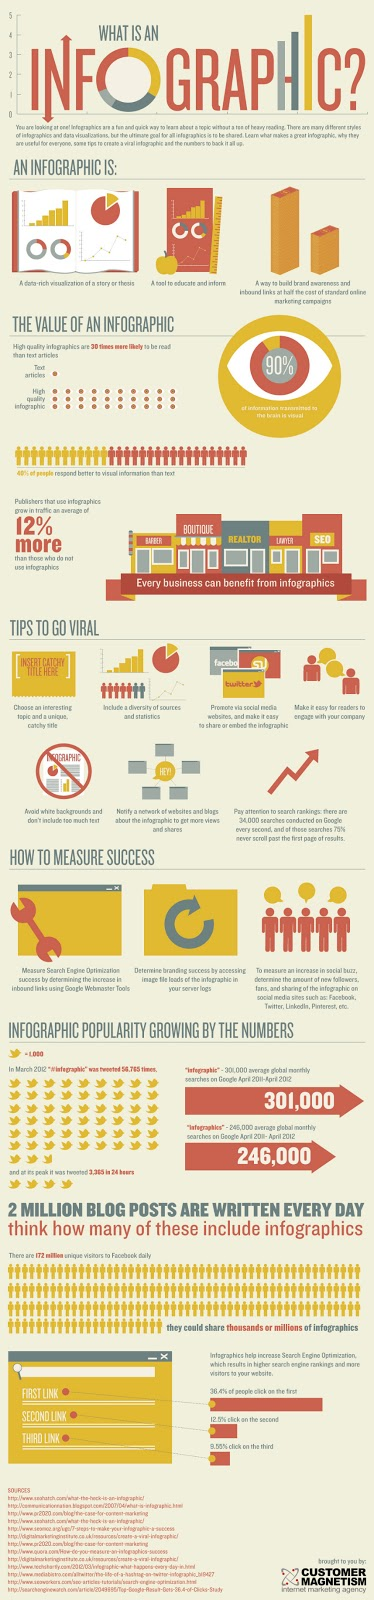 What Is an Infographic - http://www.customermagnetism.com/infographics/imgs/what-is-an-infographic.jpg